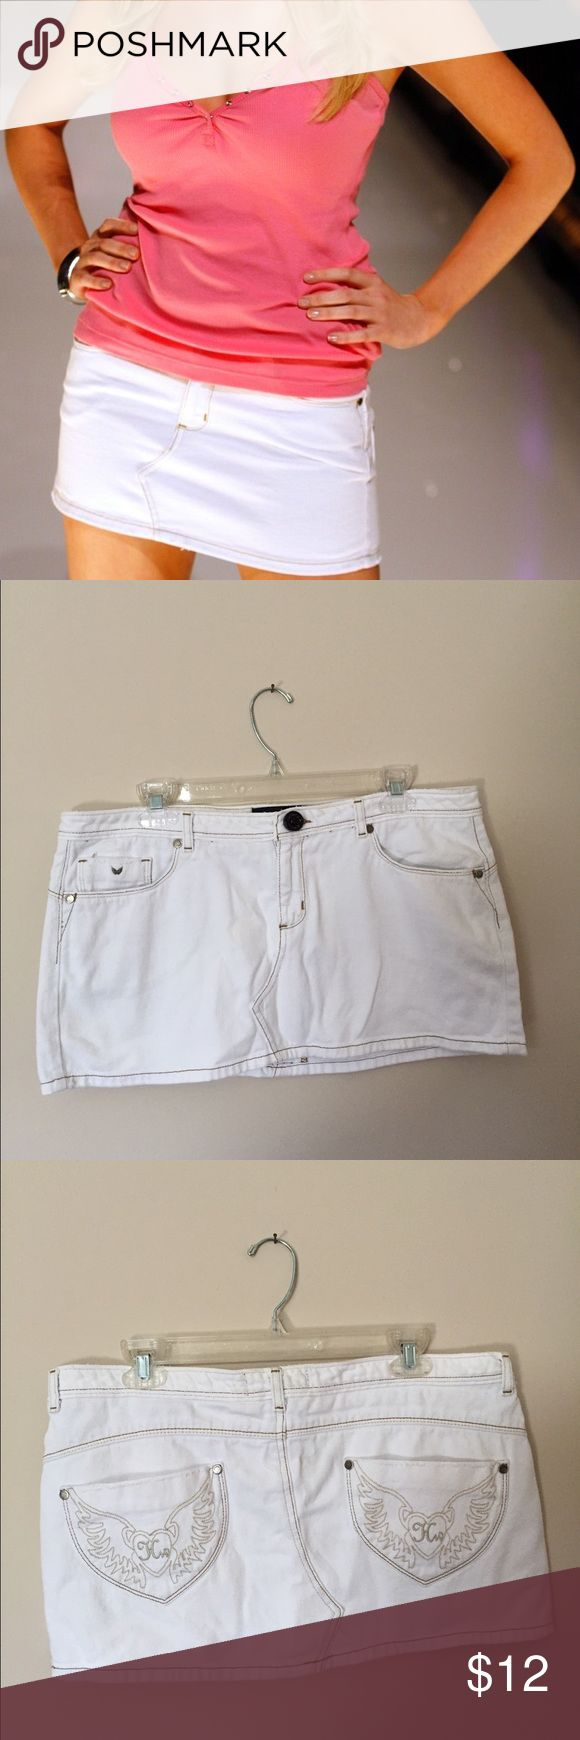 Heidiwood white skirt Heidiwood (Heidi from The Hills) white denim skirt. Perfect for summer. Tag is missing but the waist is about 35 inches. Bundle to save. No trades. Heidiwood Skirts Mini